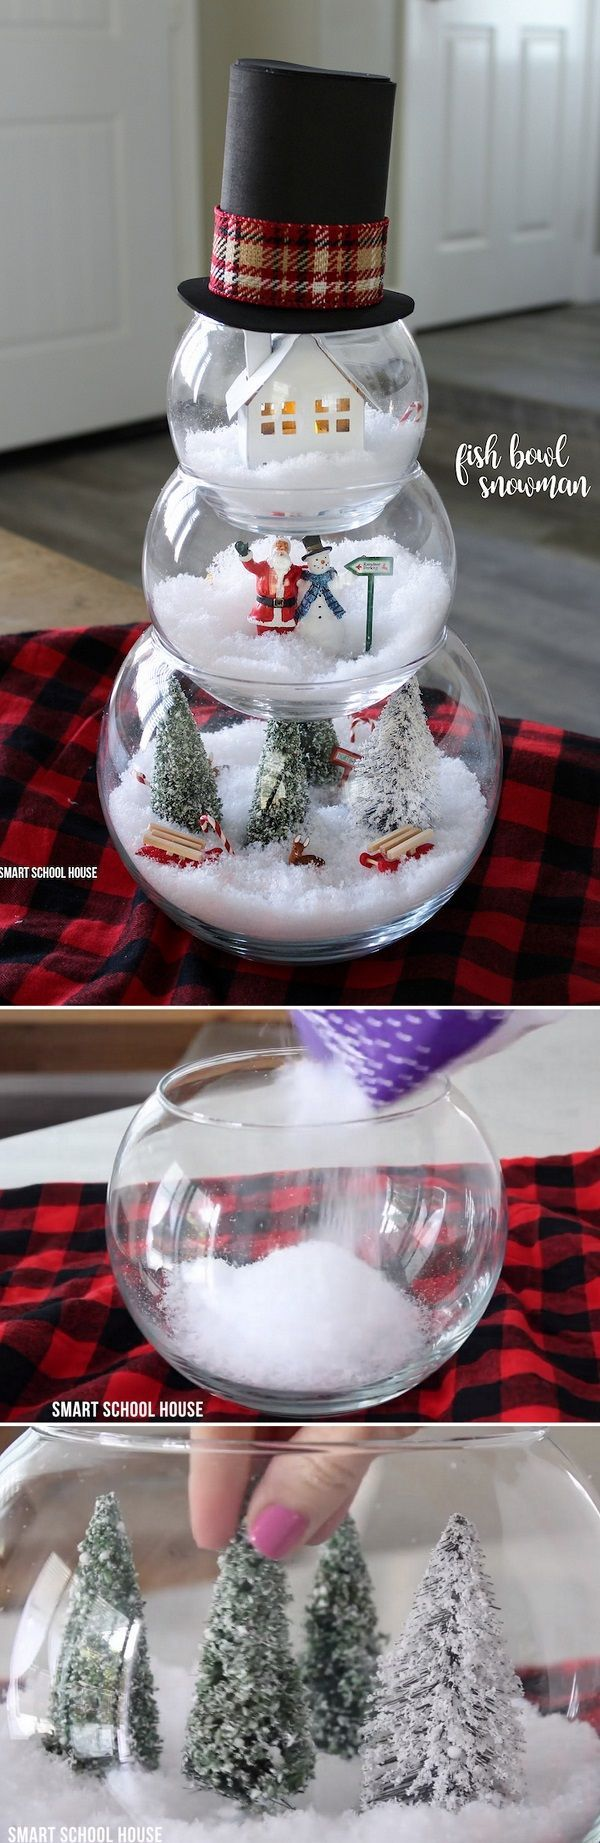 Check out some awesome DIY Christmas decorations that you can make from Dollar Store items to decorate your home in a unique way on a budget.